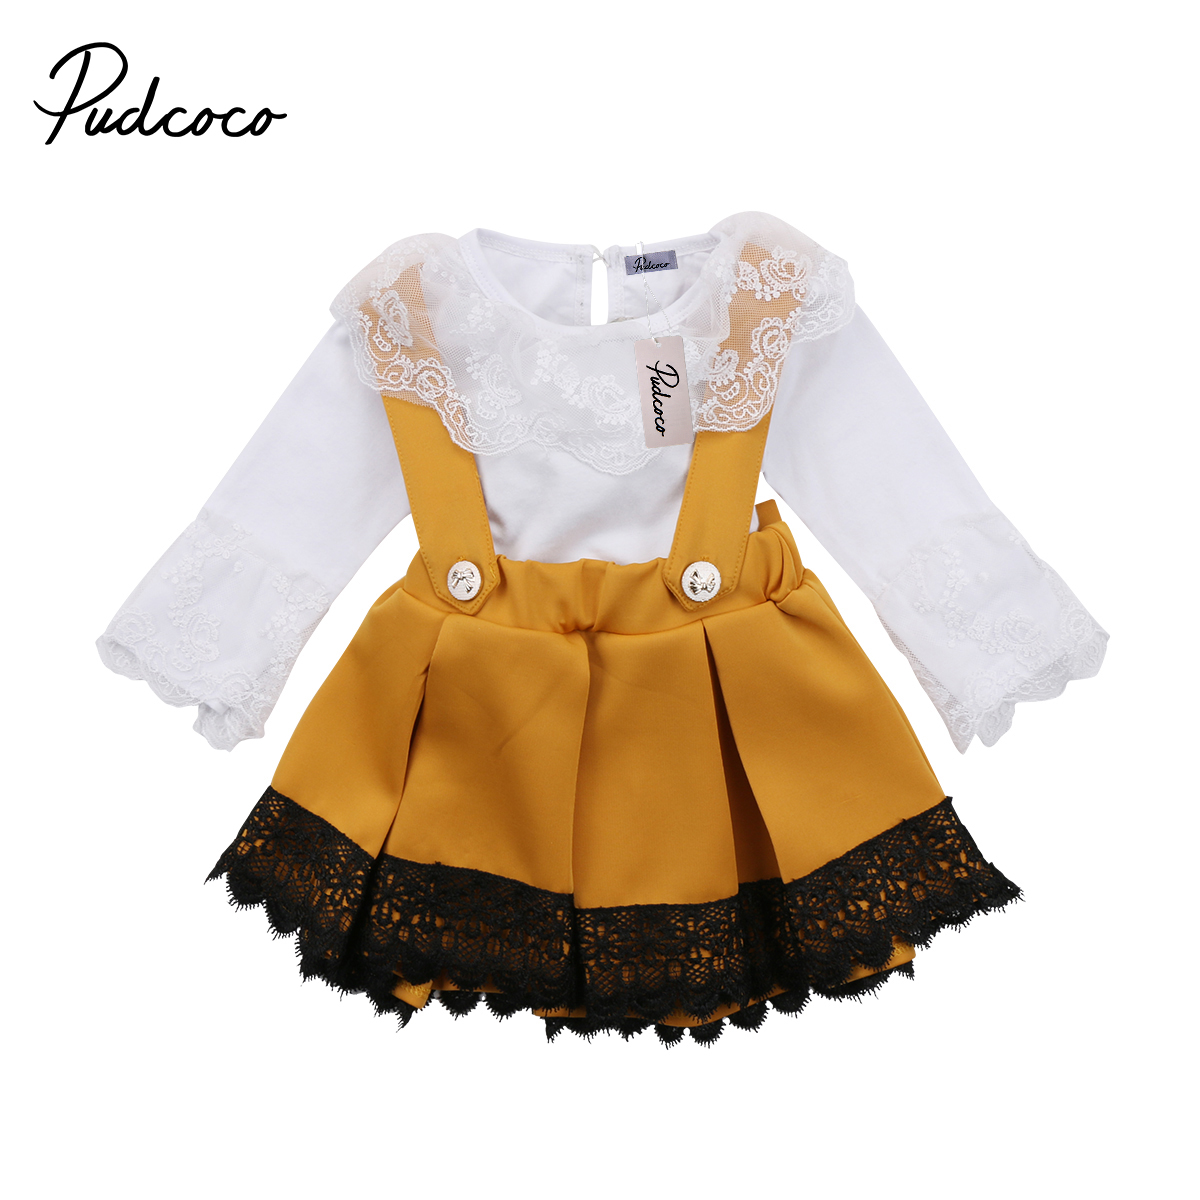 2018 Brand New Newborn Toddler Infant Kid Baby Girl Lace Jumpsuit Romper Princess Party Skirt 2Pc Outfit Set Long Sleeve Clothes baby rompers newborn infant clothing 2016 brand baby boy girl long sleeve one piece romper bamboo leaves toddler jumpsuit